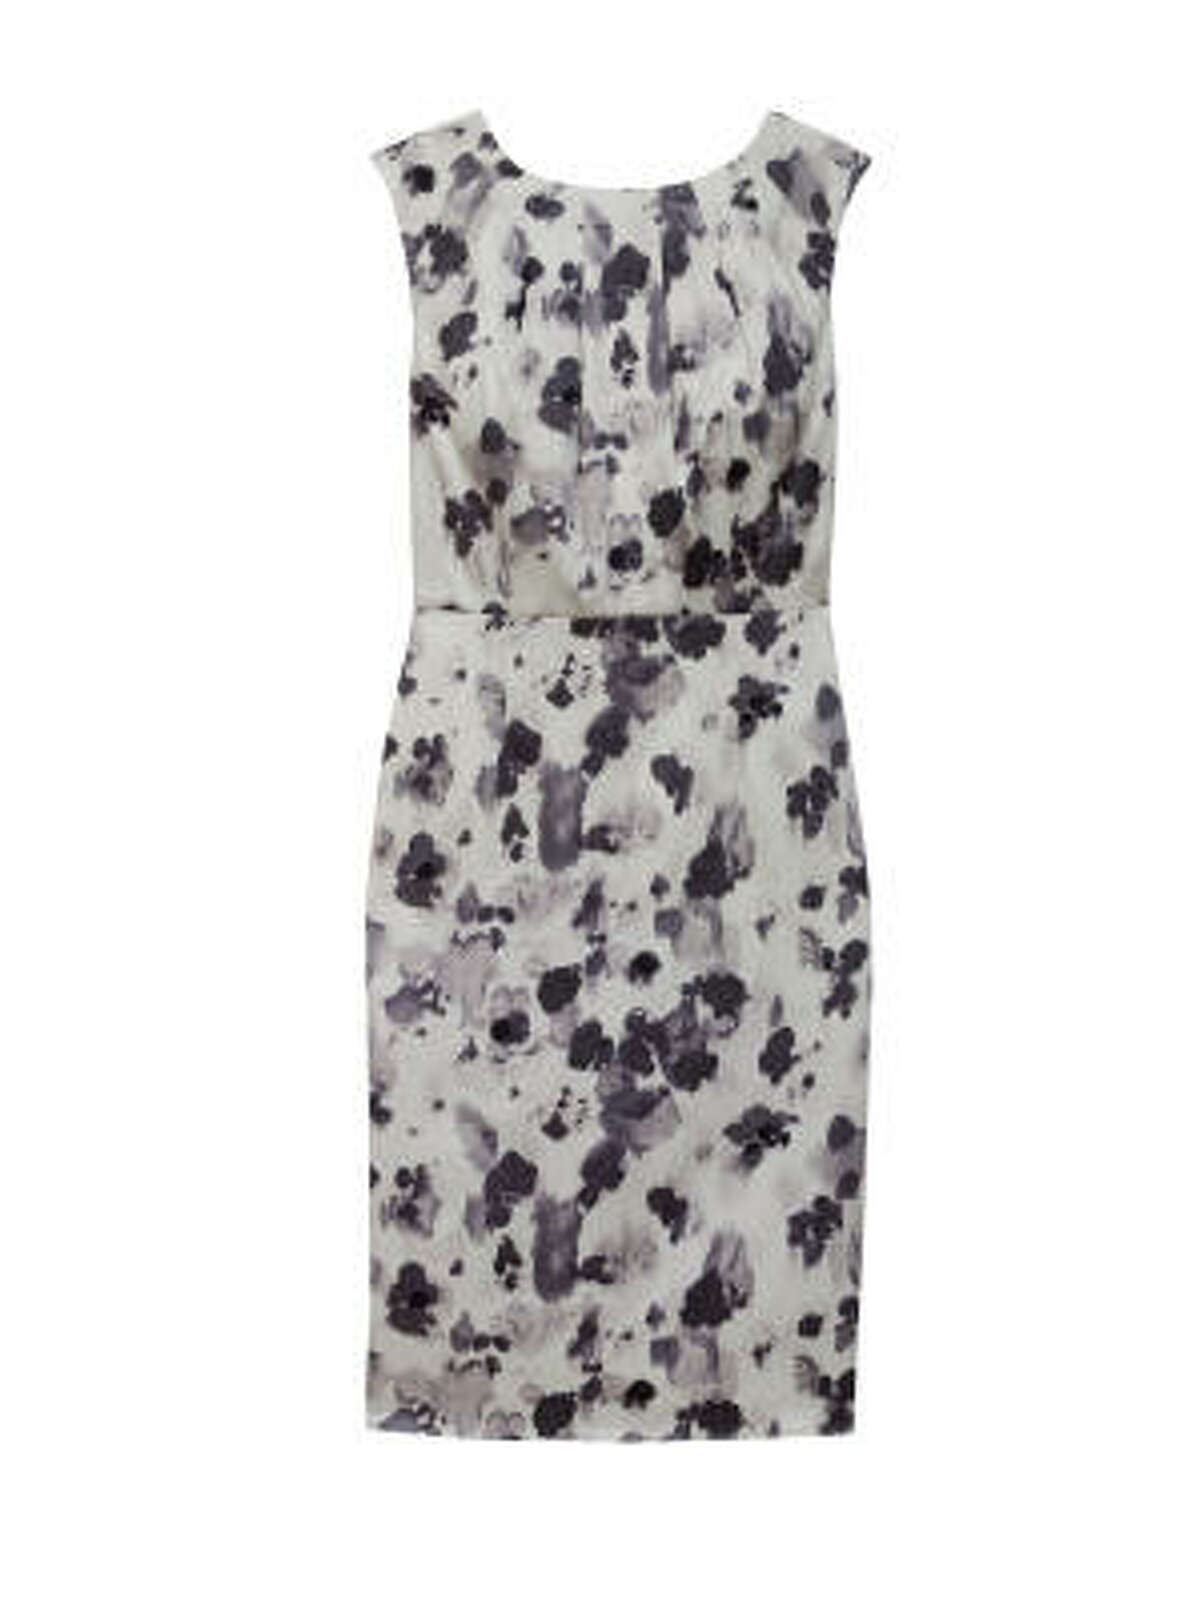 Silk Flower Animal Print Sheath Dress, $158, available in sizes up to 14 at Ann Taylor stores and up to size 18 online at anntaylor.com